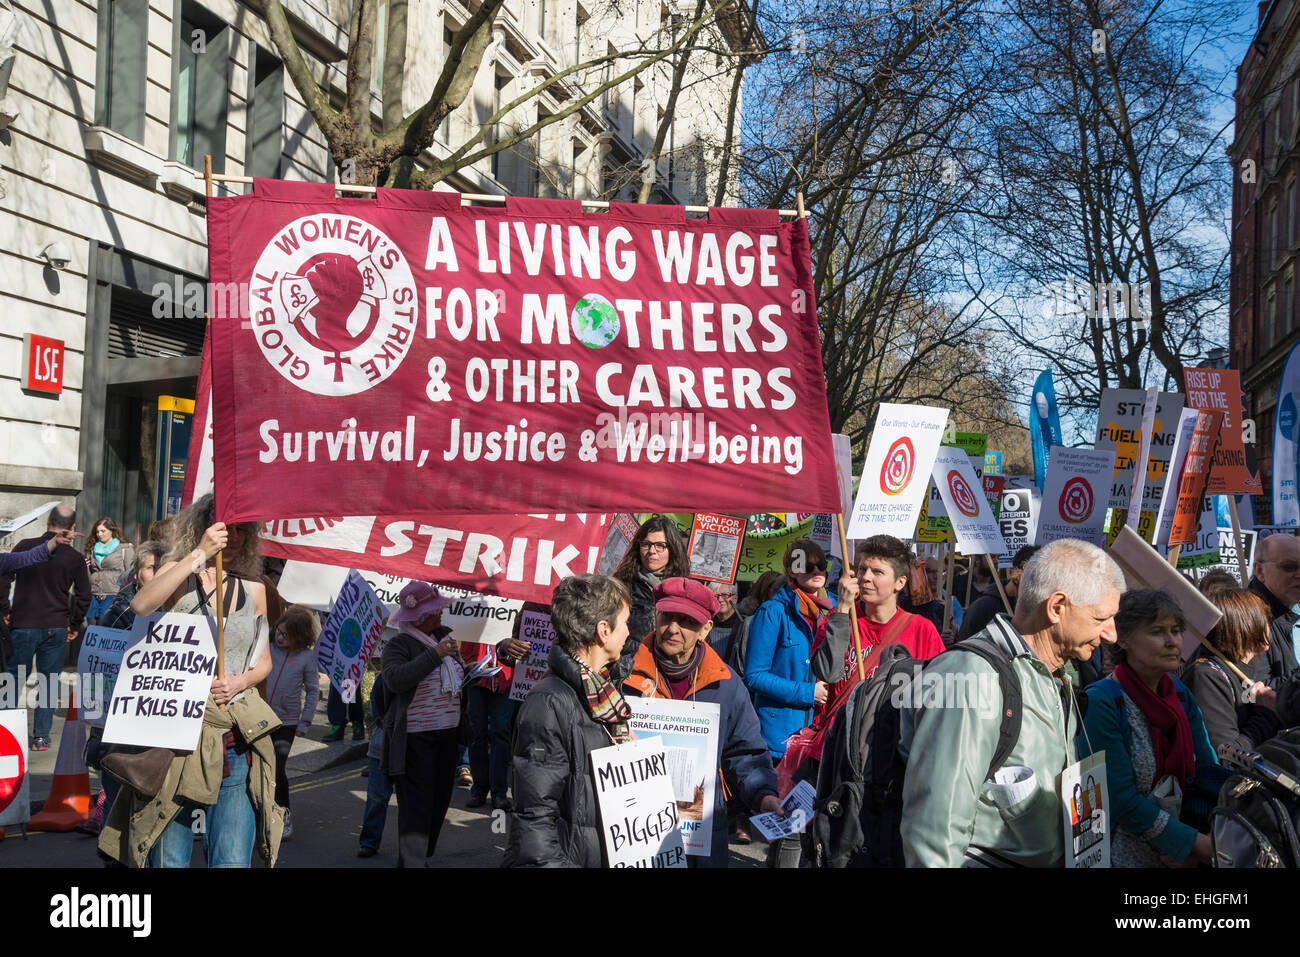 Campaign Against Climate Change demonstration, London, 7 March 2015, Uk - Stock Image